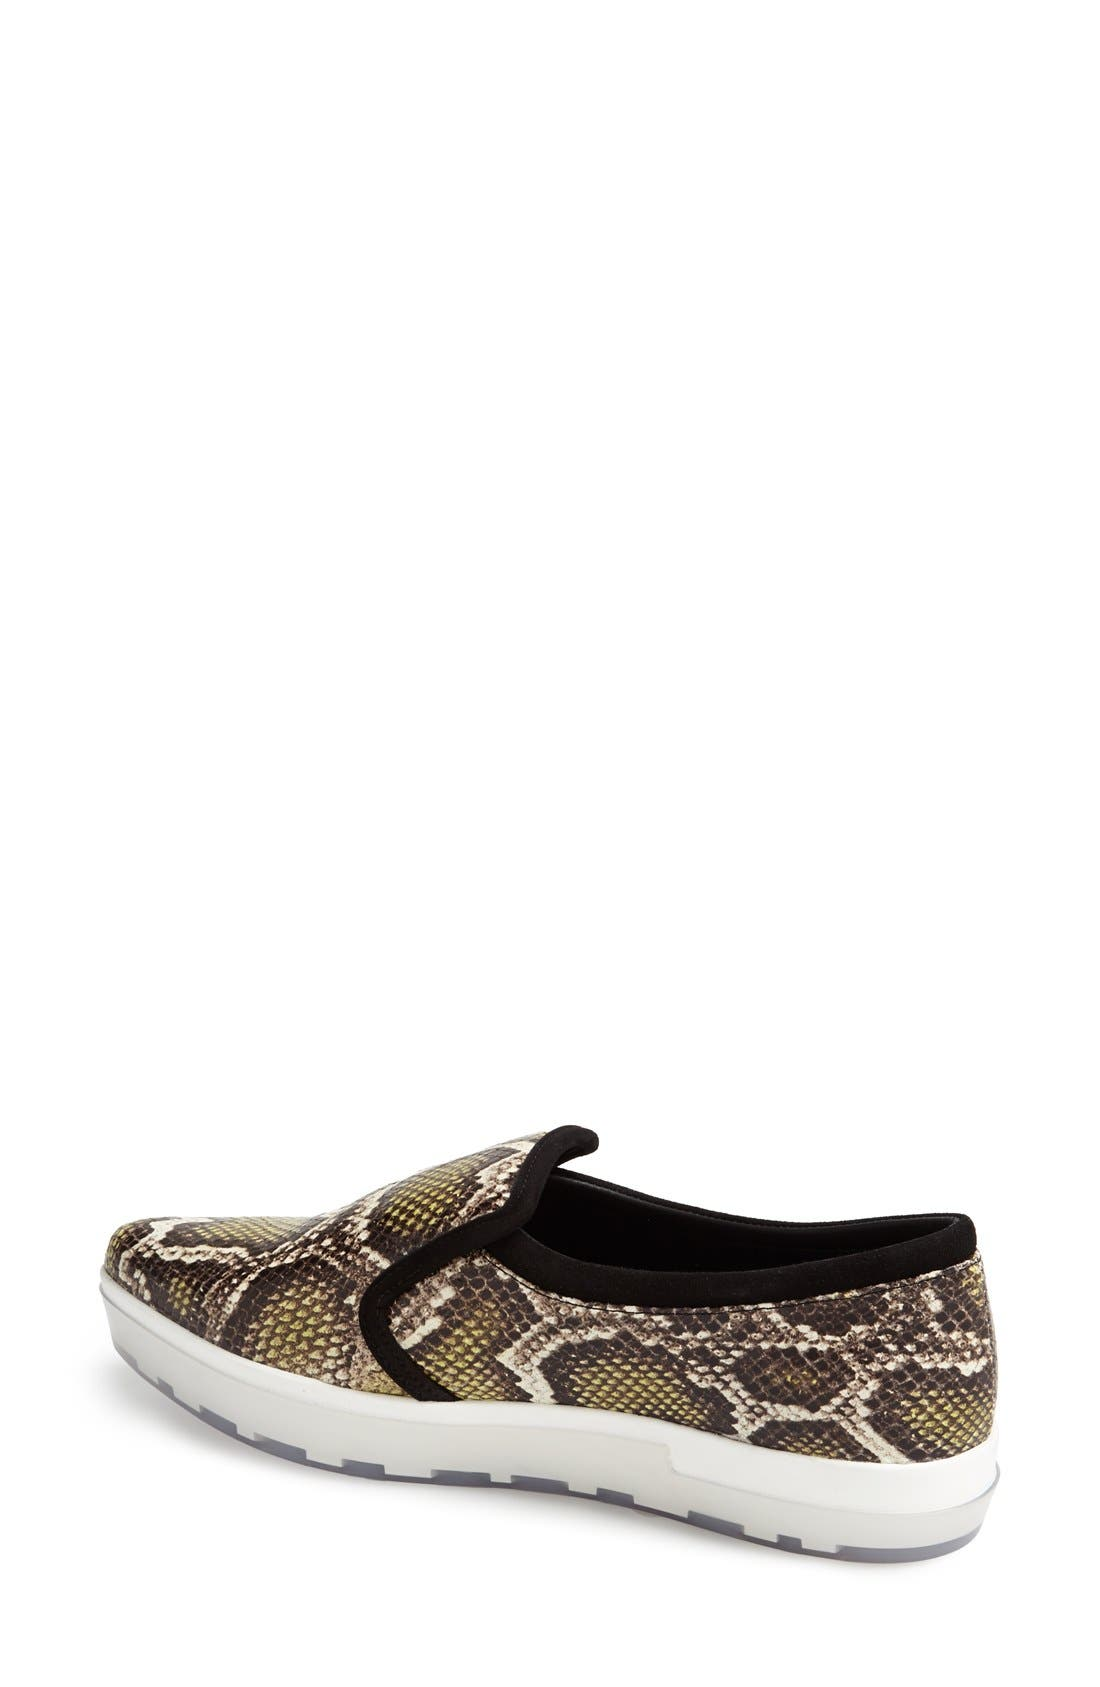 Alternate Image 2  - Jimmy Choo 'Brooklyn' Slip-On Sneaker (Women)